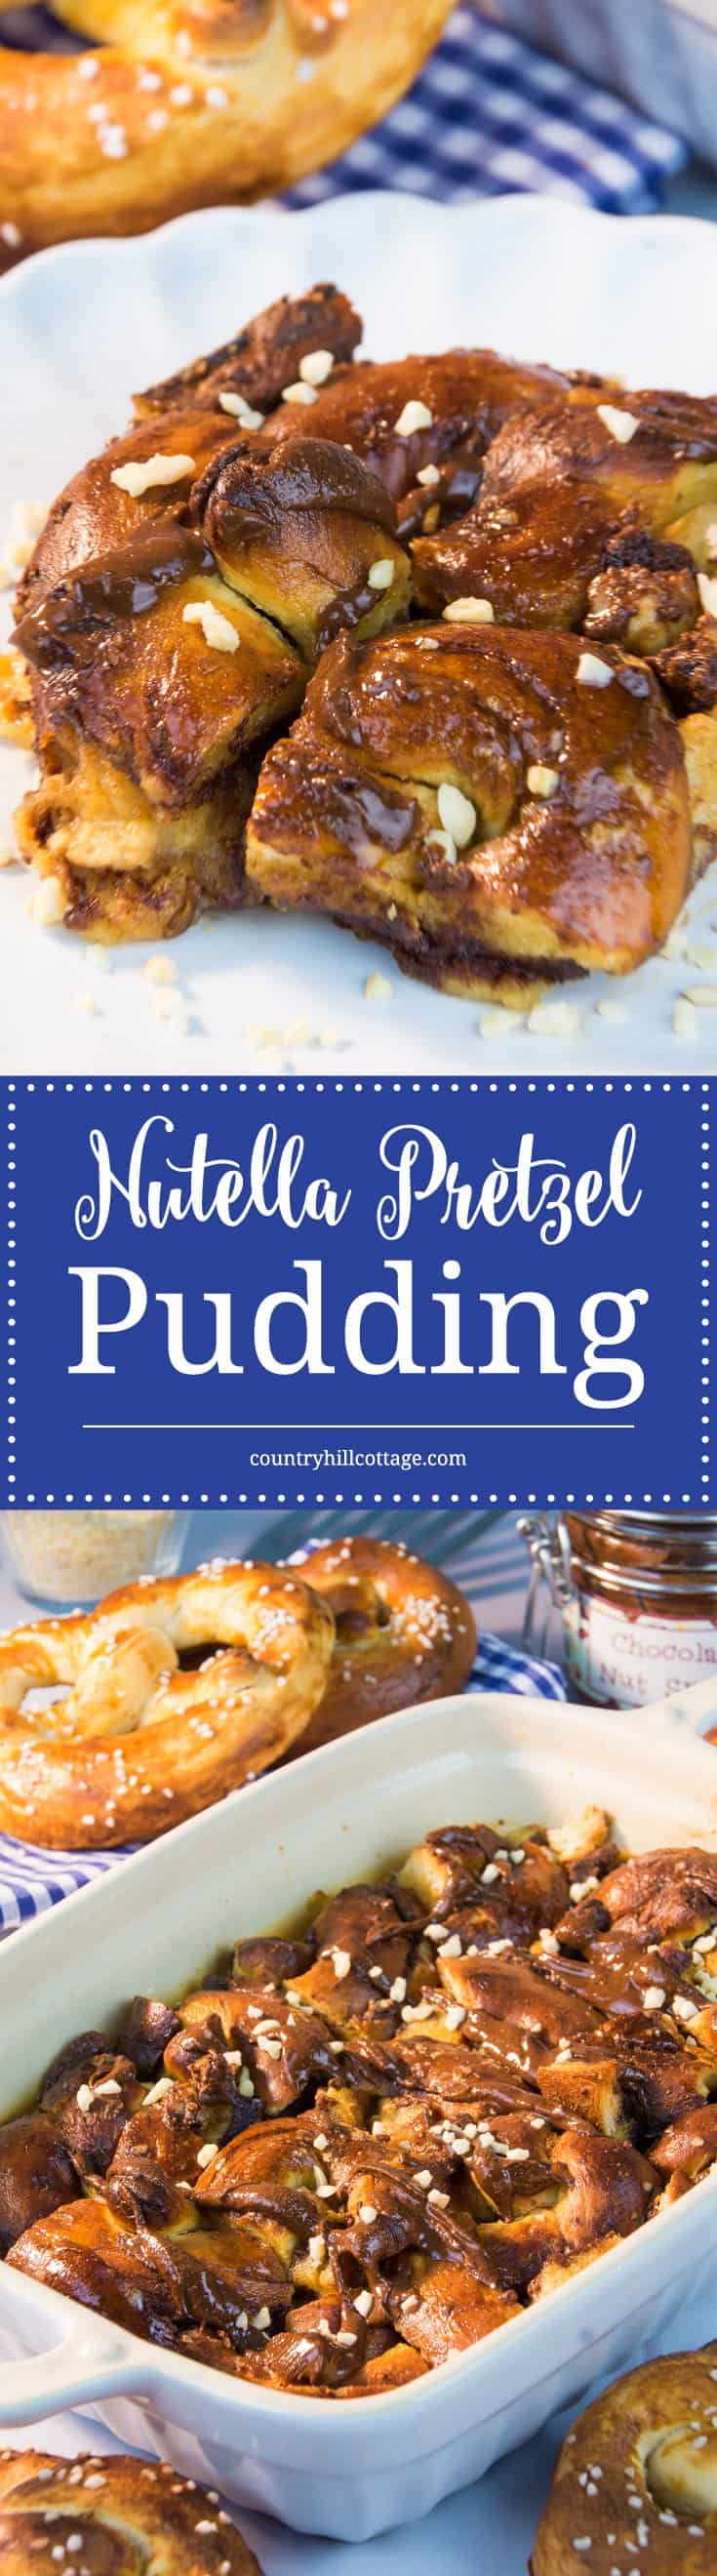 Our tasty Nutella pretzel bread pudding is made with soft pretzels, and is an easy, kid-friendly dessert idea! #nutella #pretzels #breadpudding | countryhillcottage.com